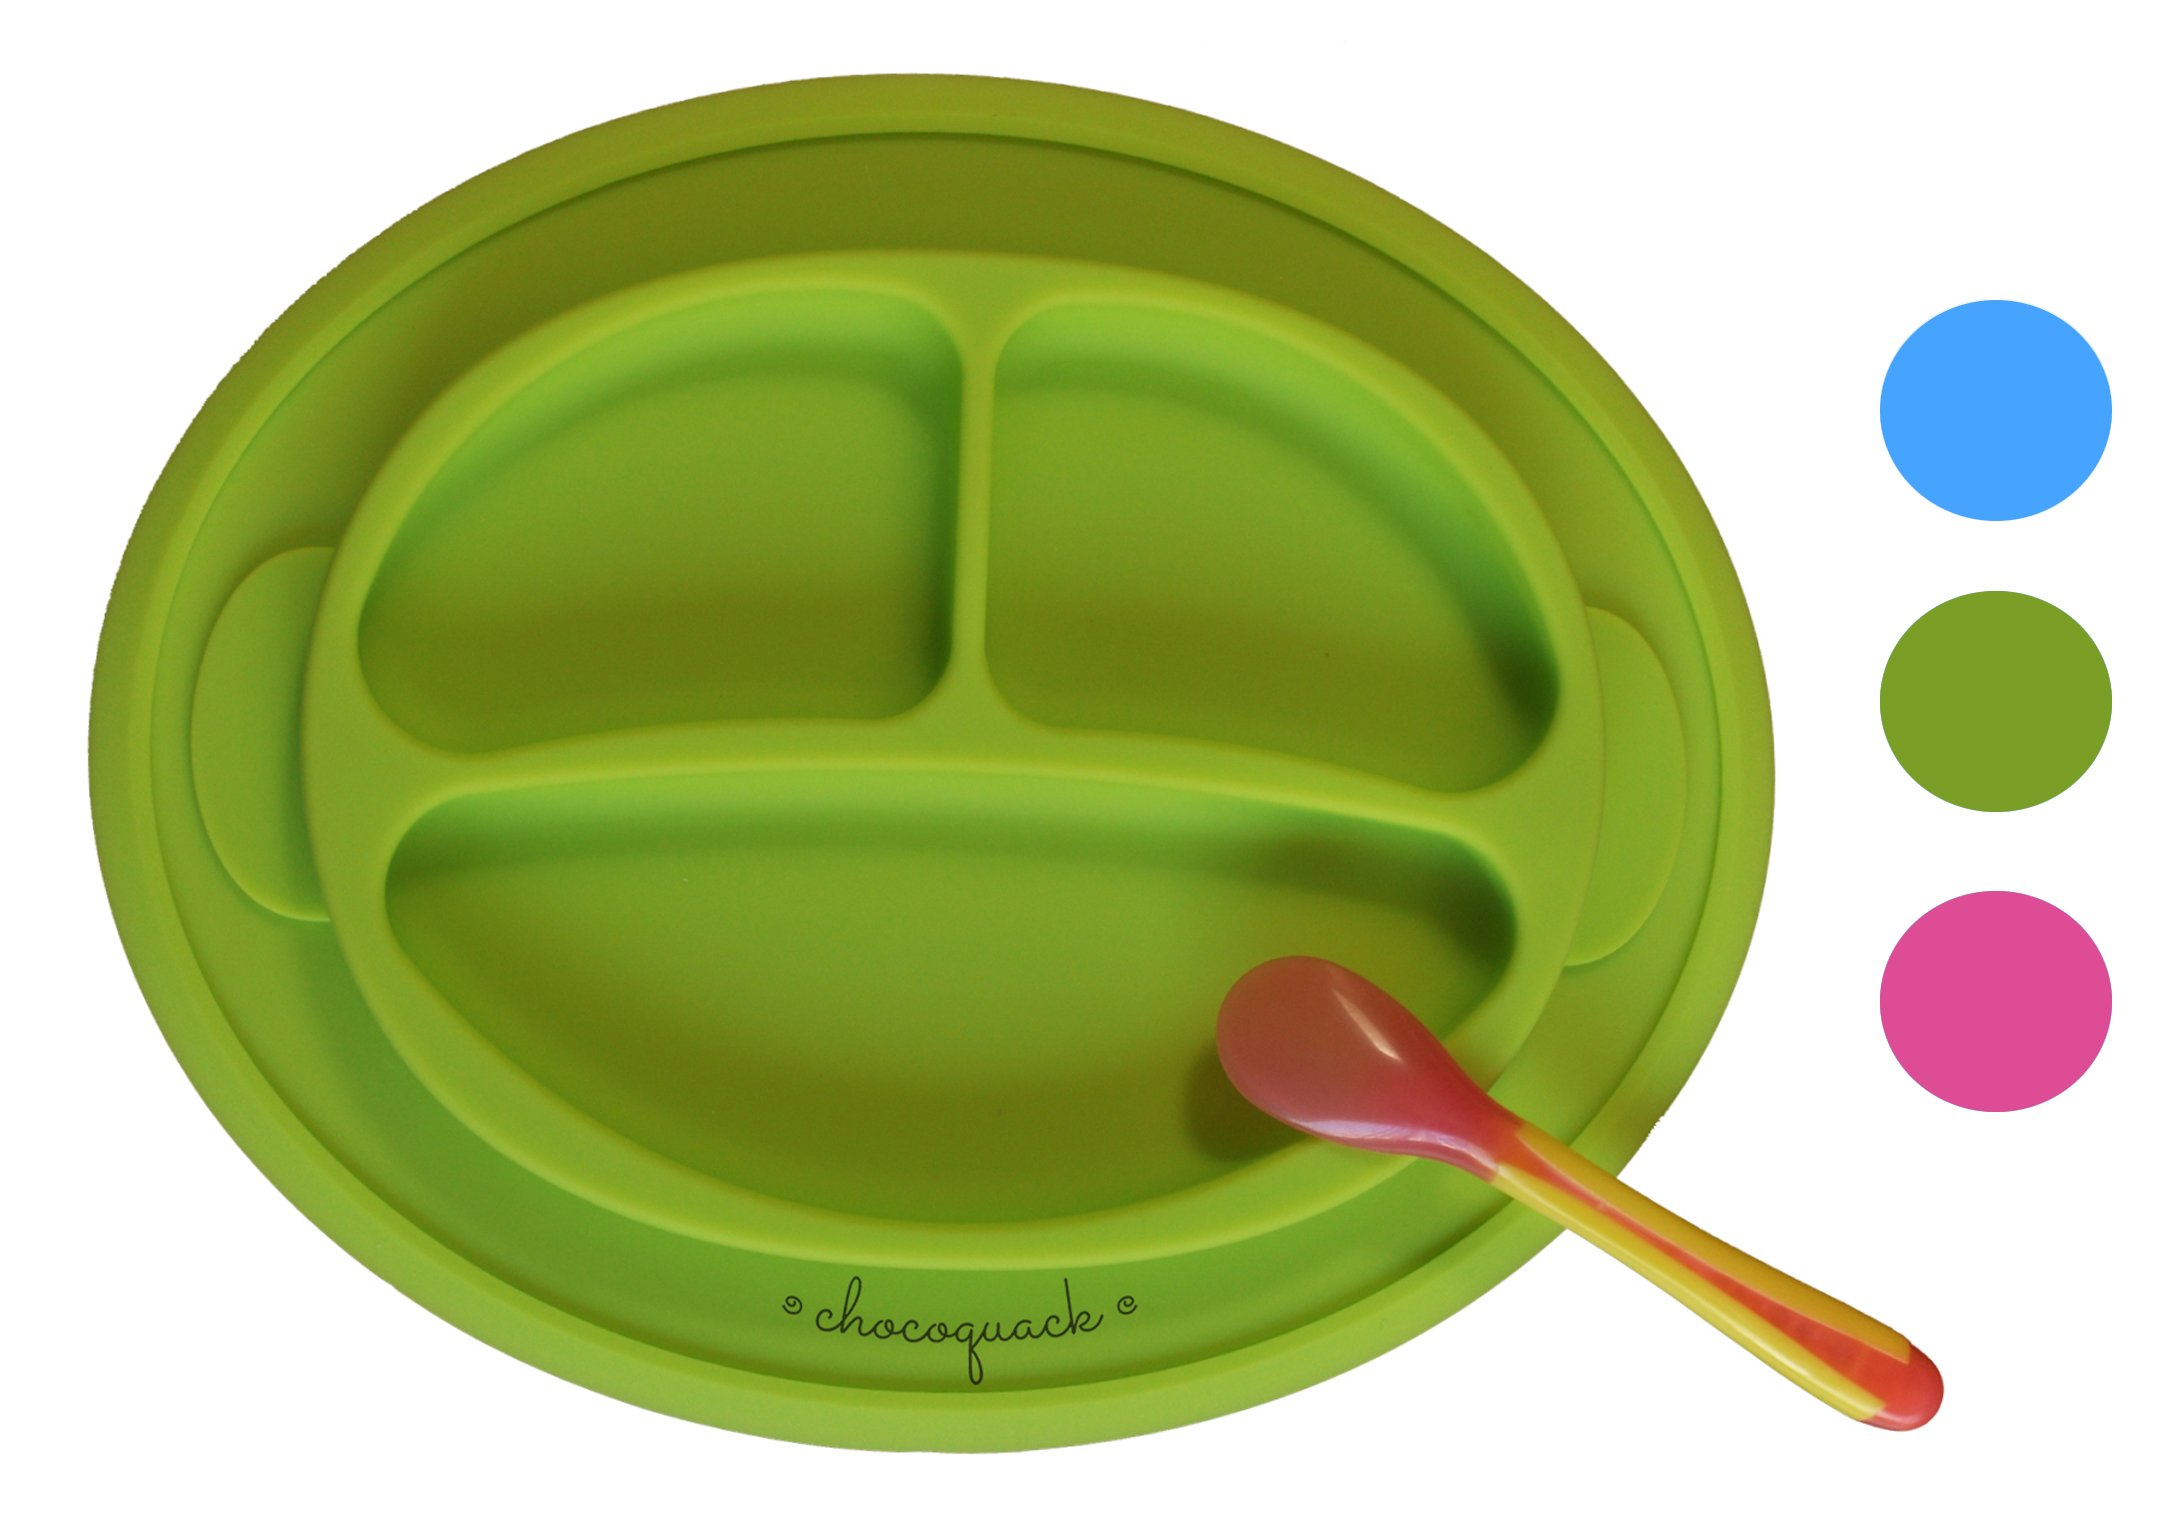 Non-slip Suction Placemat Combo. Includes Monkey Silicone Placemat and Blue Spoon for Baby, Toddler & Kids. Ideal for Highchair Feeding, Kitchen Dining Table and Outdoors.